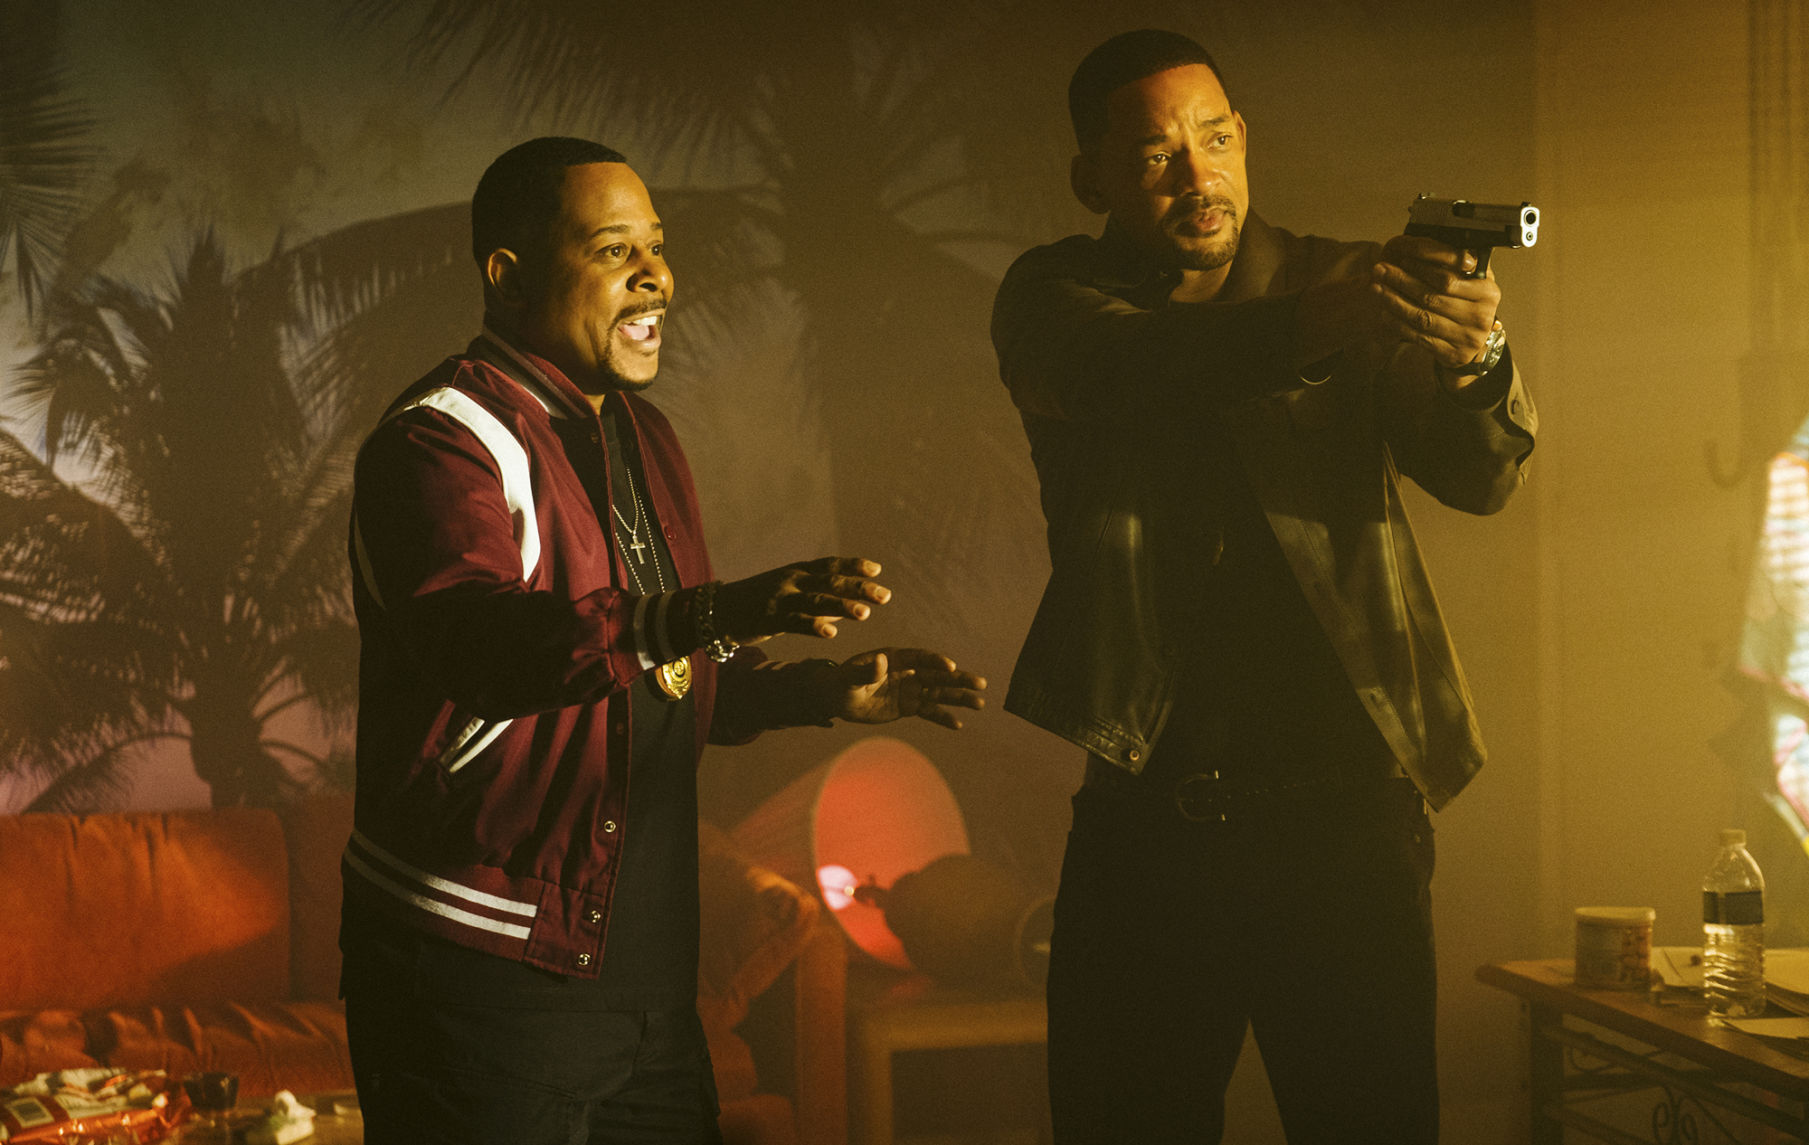 Review: 'Bad Boys 3' breathes new life into franchise